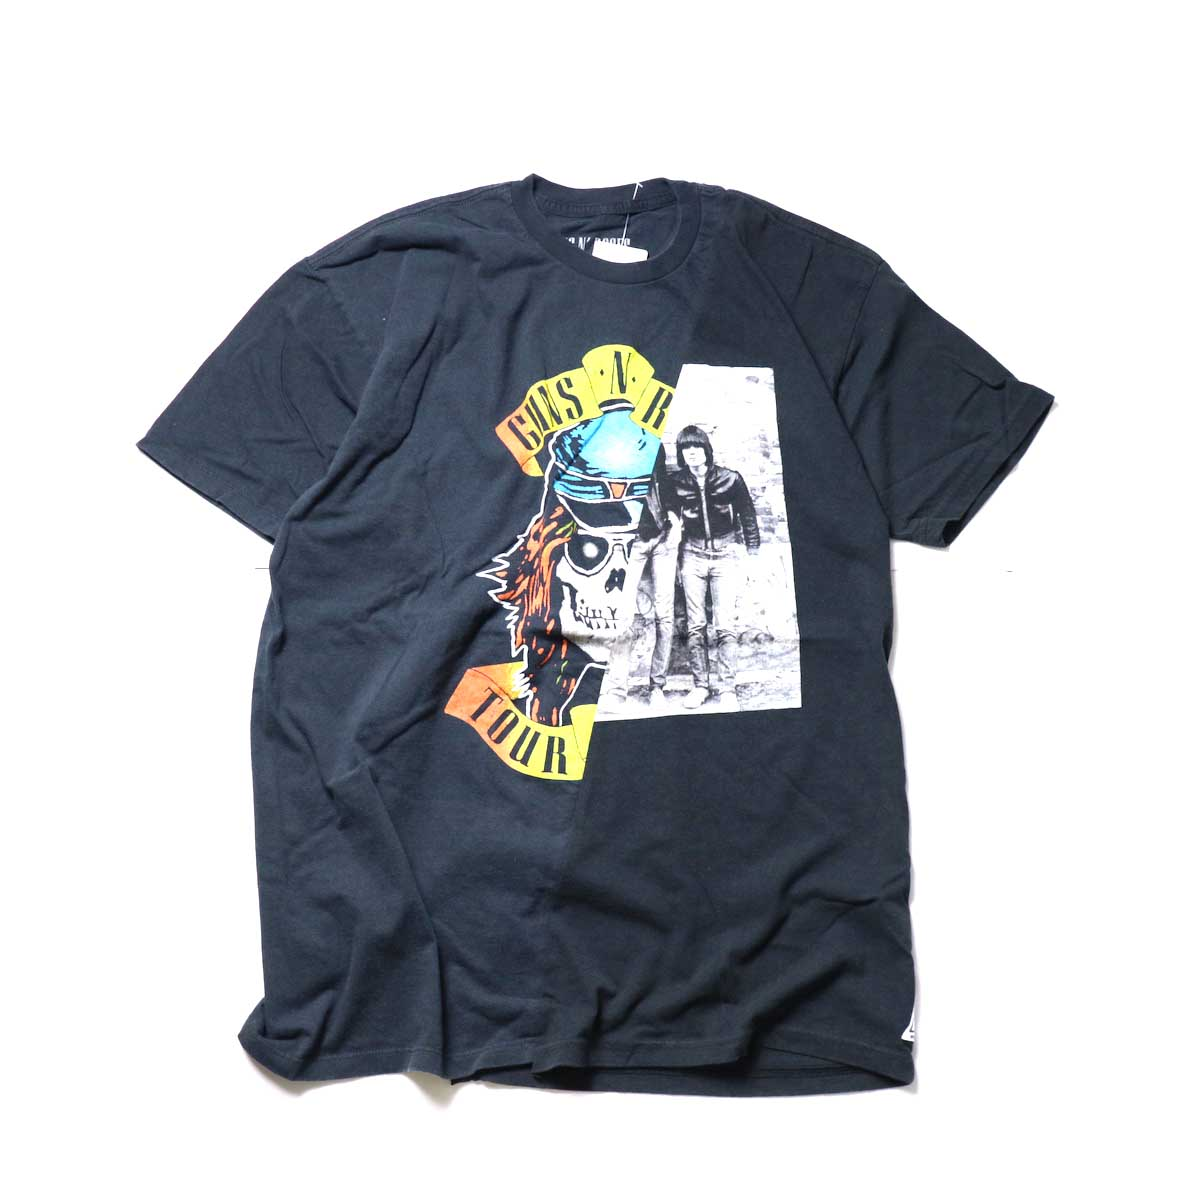 THRIFTY LOOK / Thrifty Twins Tee -Music (D)